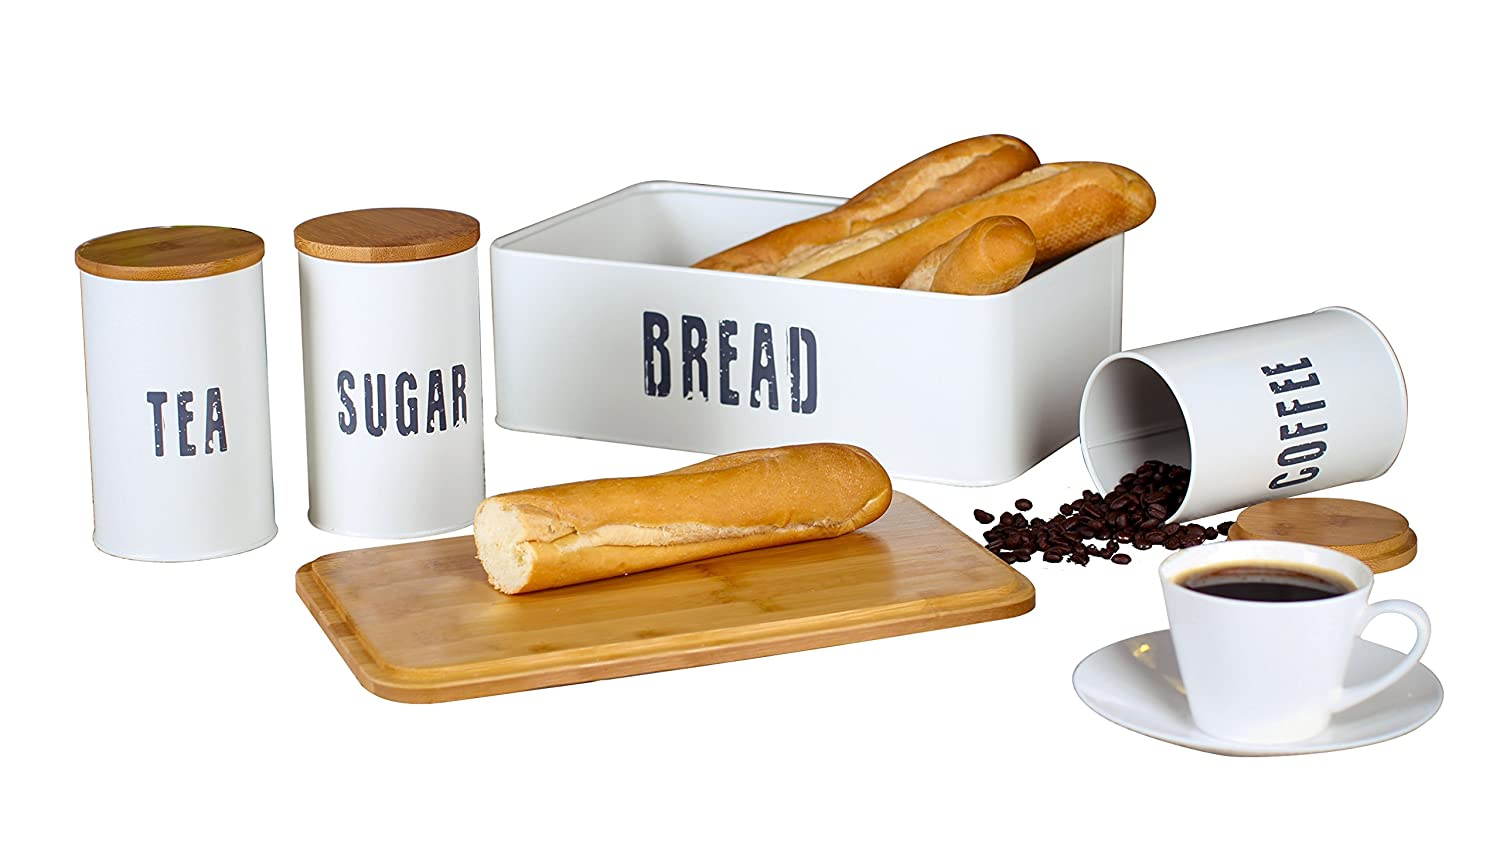 Novel Solutions Retro Bread Bin Plus Canister Combo with Bamboo Lid, Steel, Cream White, 33.5 x 21.5 x 12 cm iTREND WORLD DS-5334